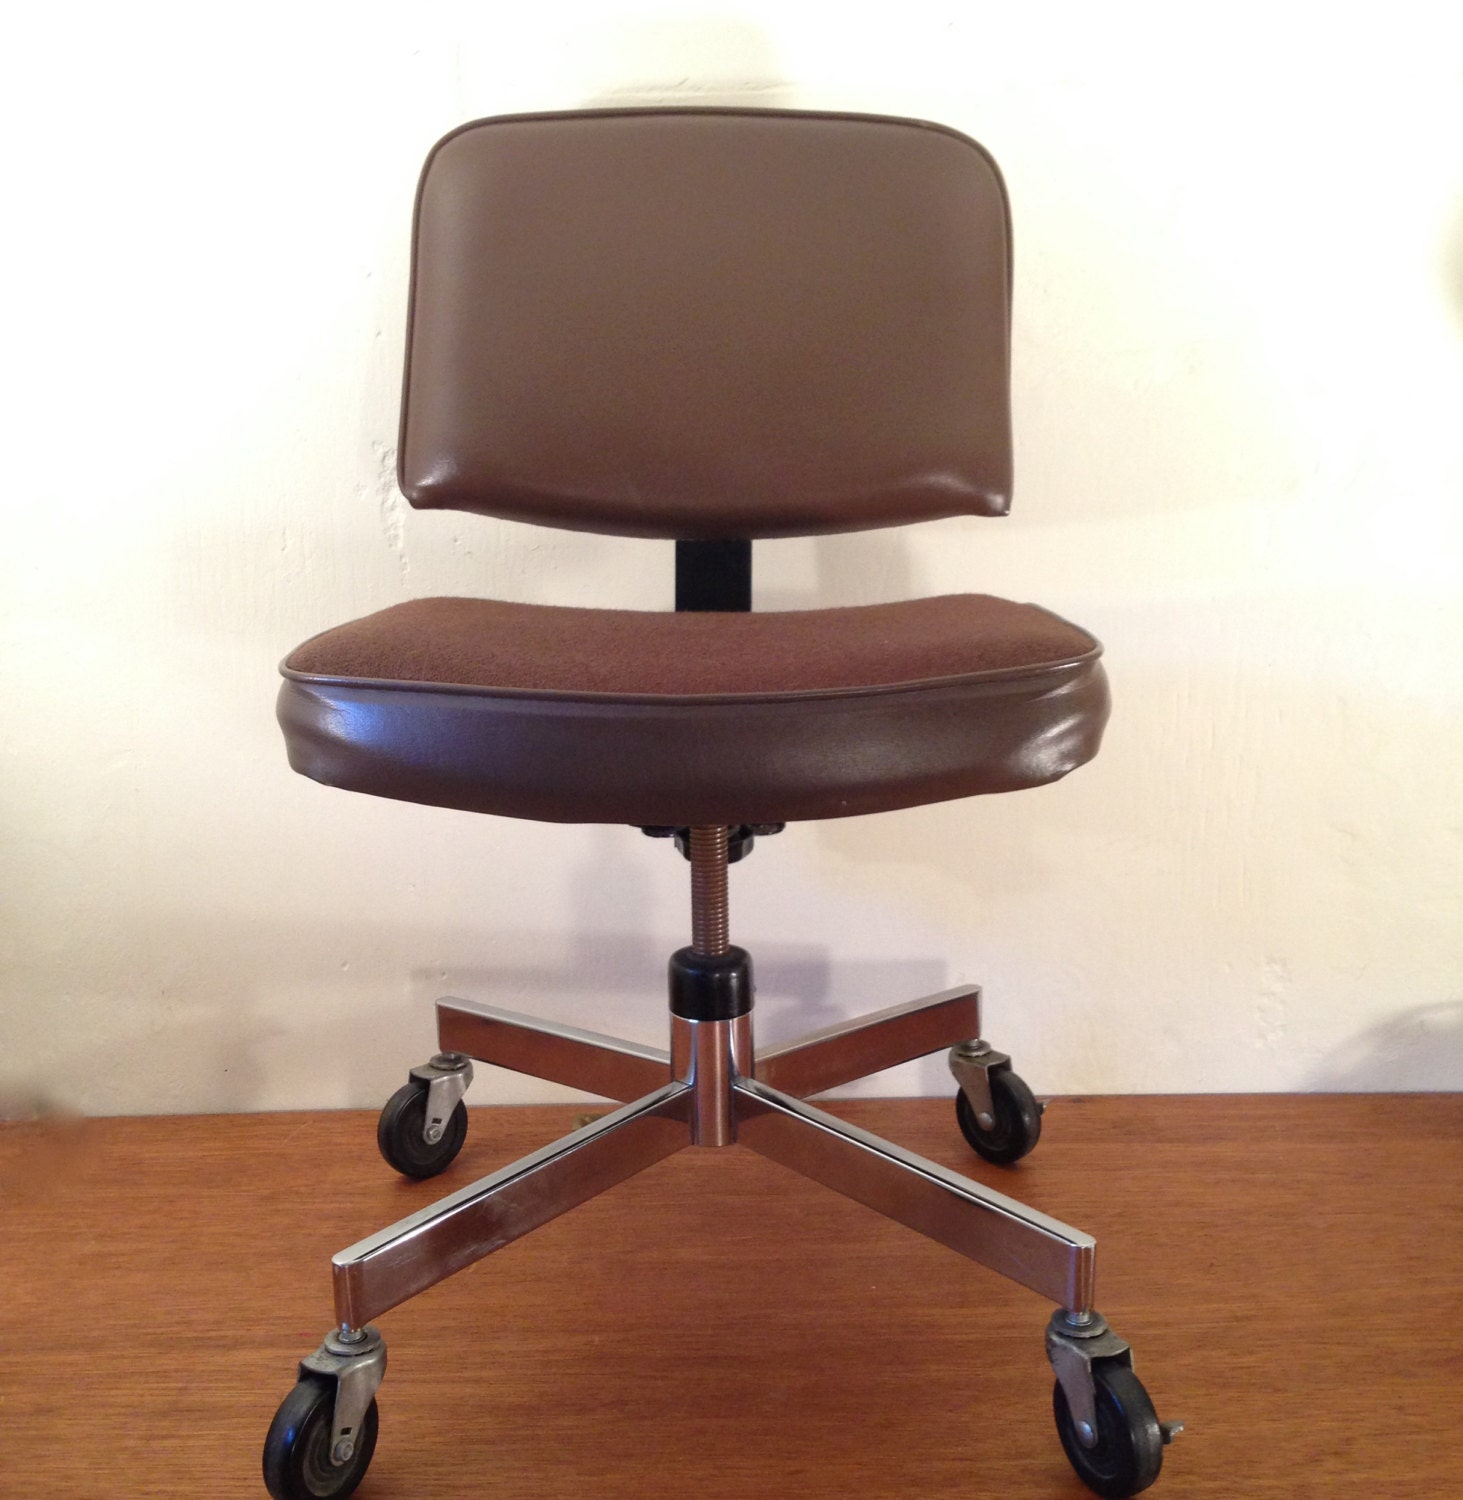 OFFICE DESK CHAIR Vintage Cushioned Chrome Brown Upholstery Fabric And Vinyl